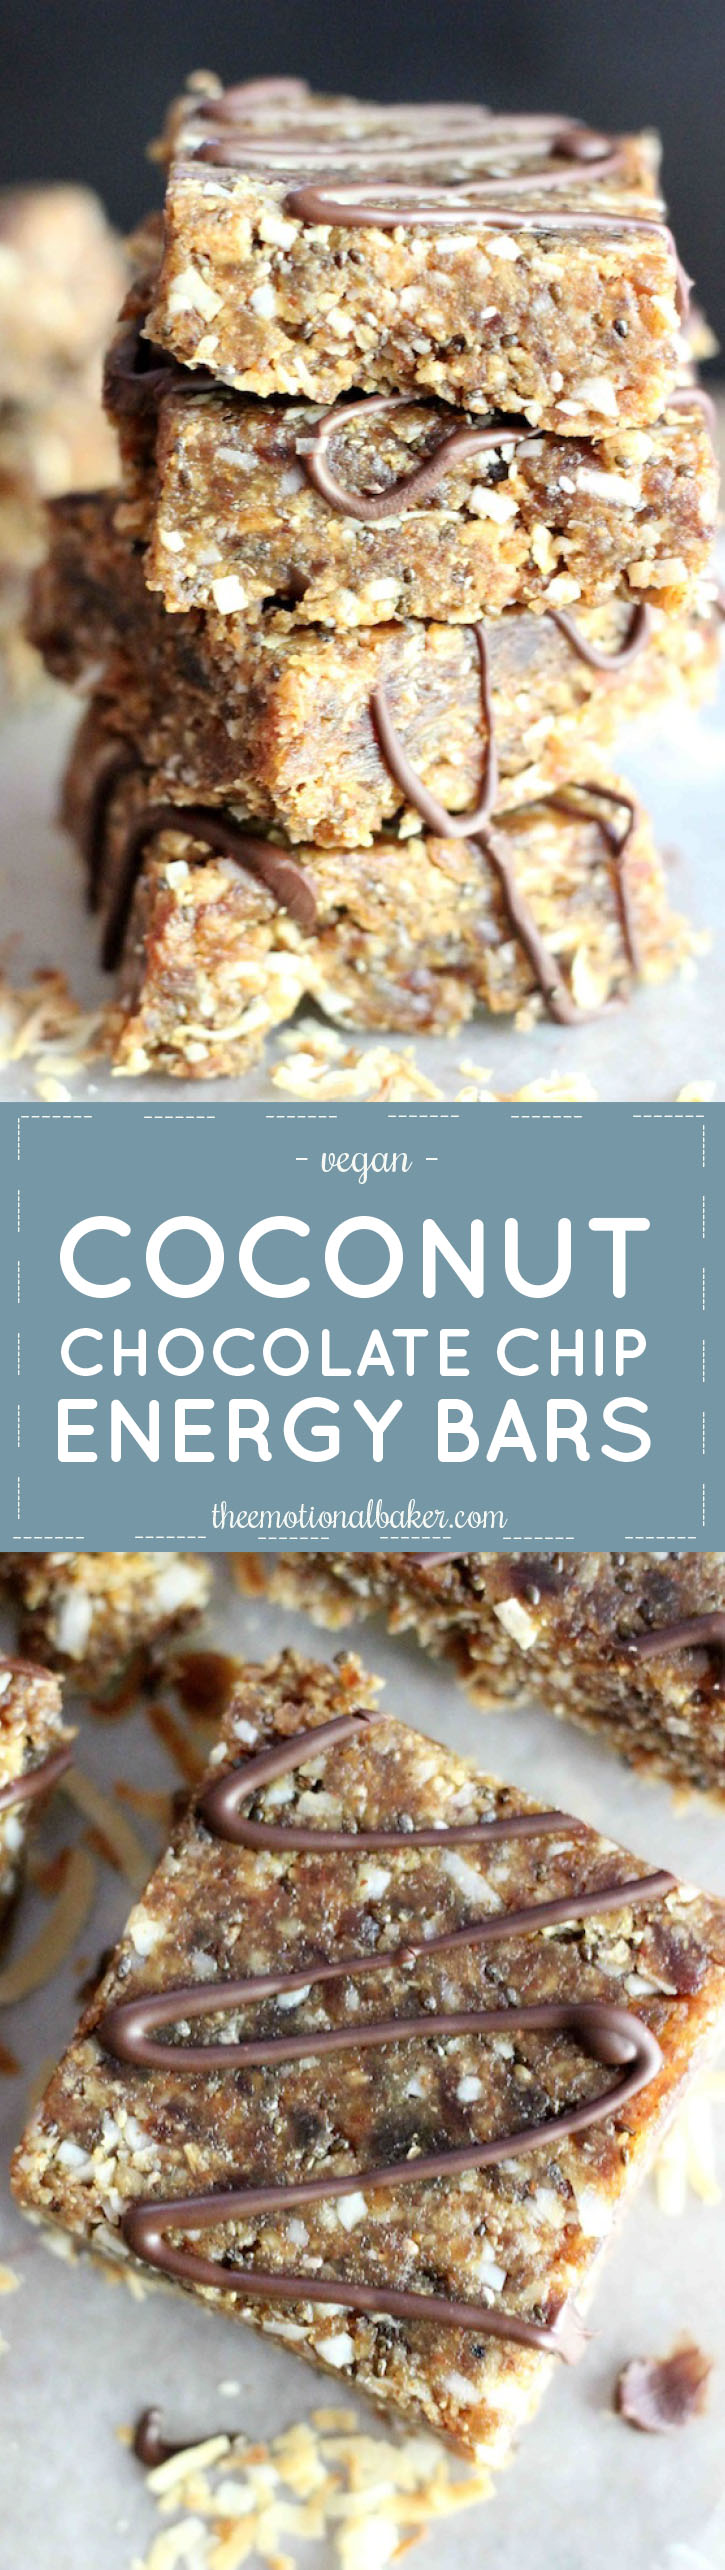 These Coconut Chocolate Chip Energy Bars satisfy your chocolate cravings with an energy boost. These energy bars are made with wholesome ingredients including dates, almond butter and chia seeds.